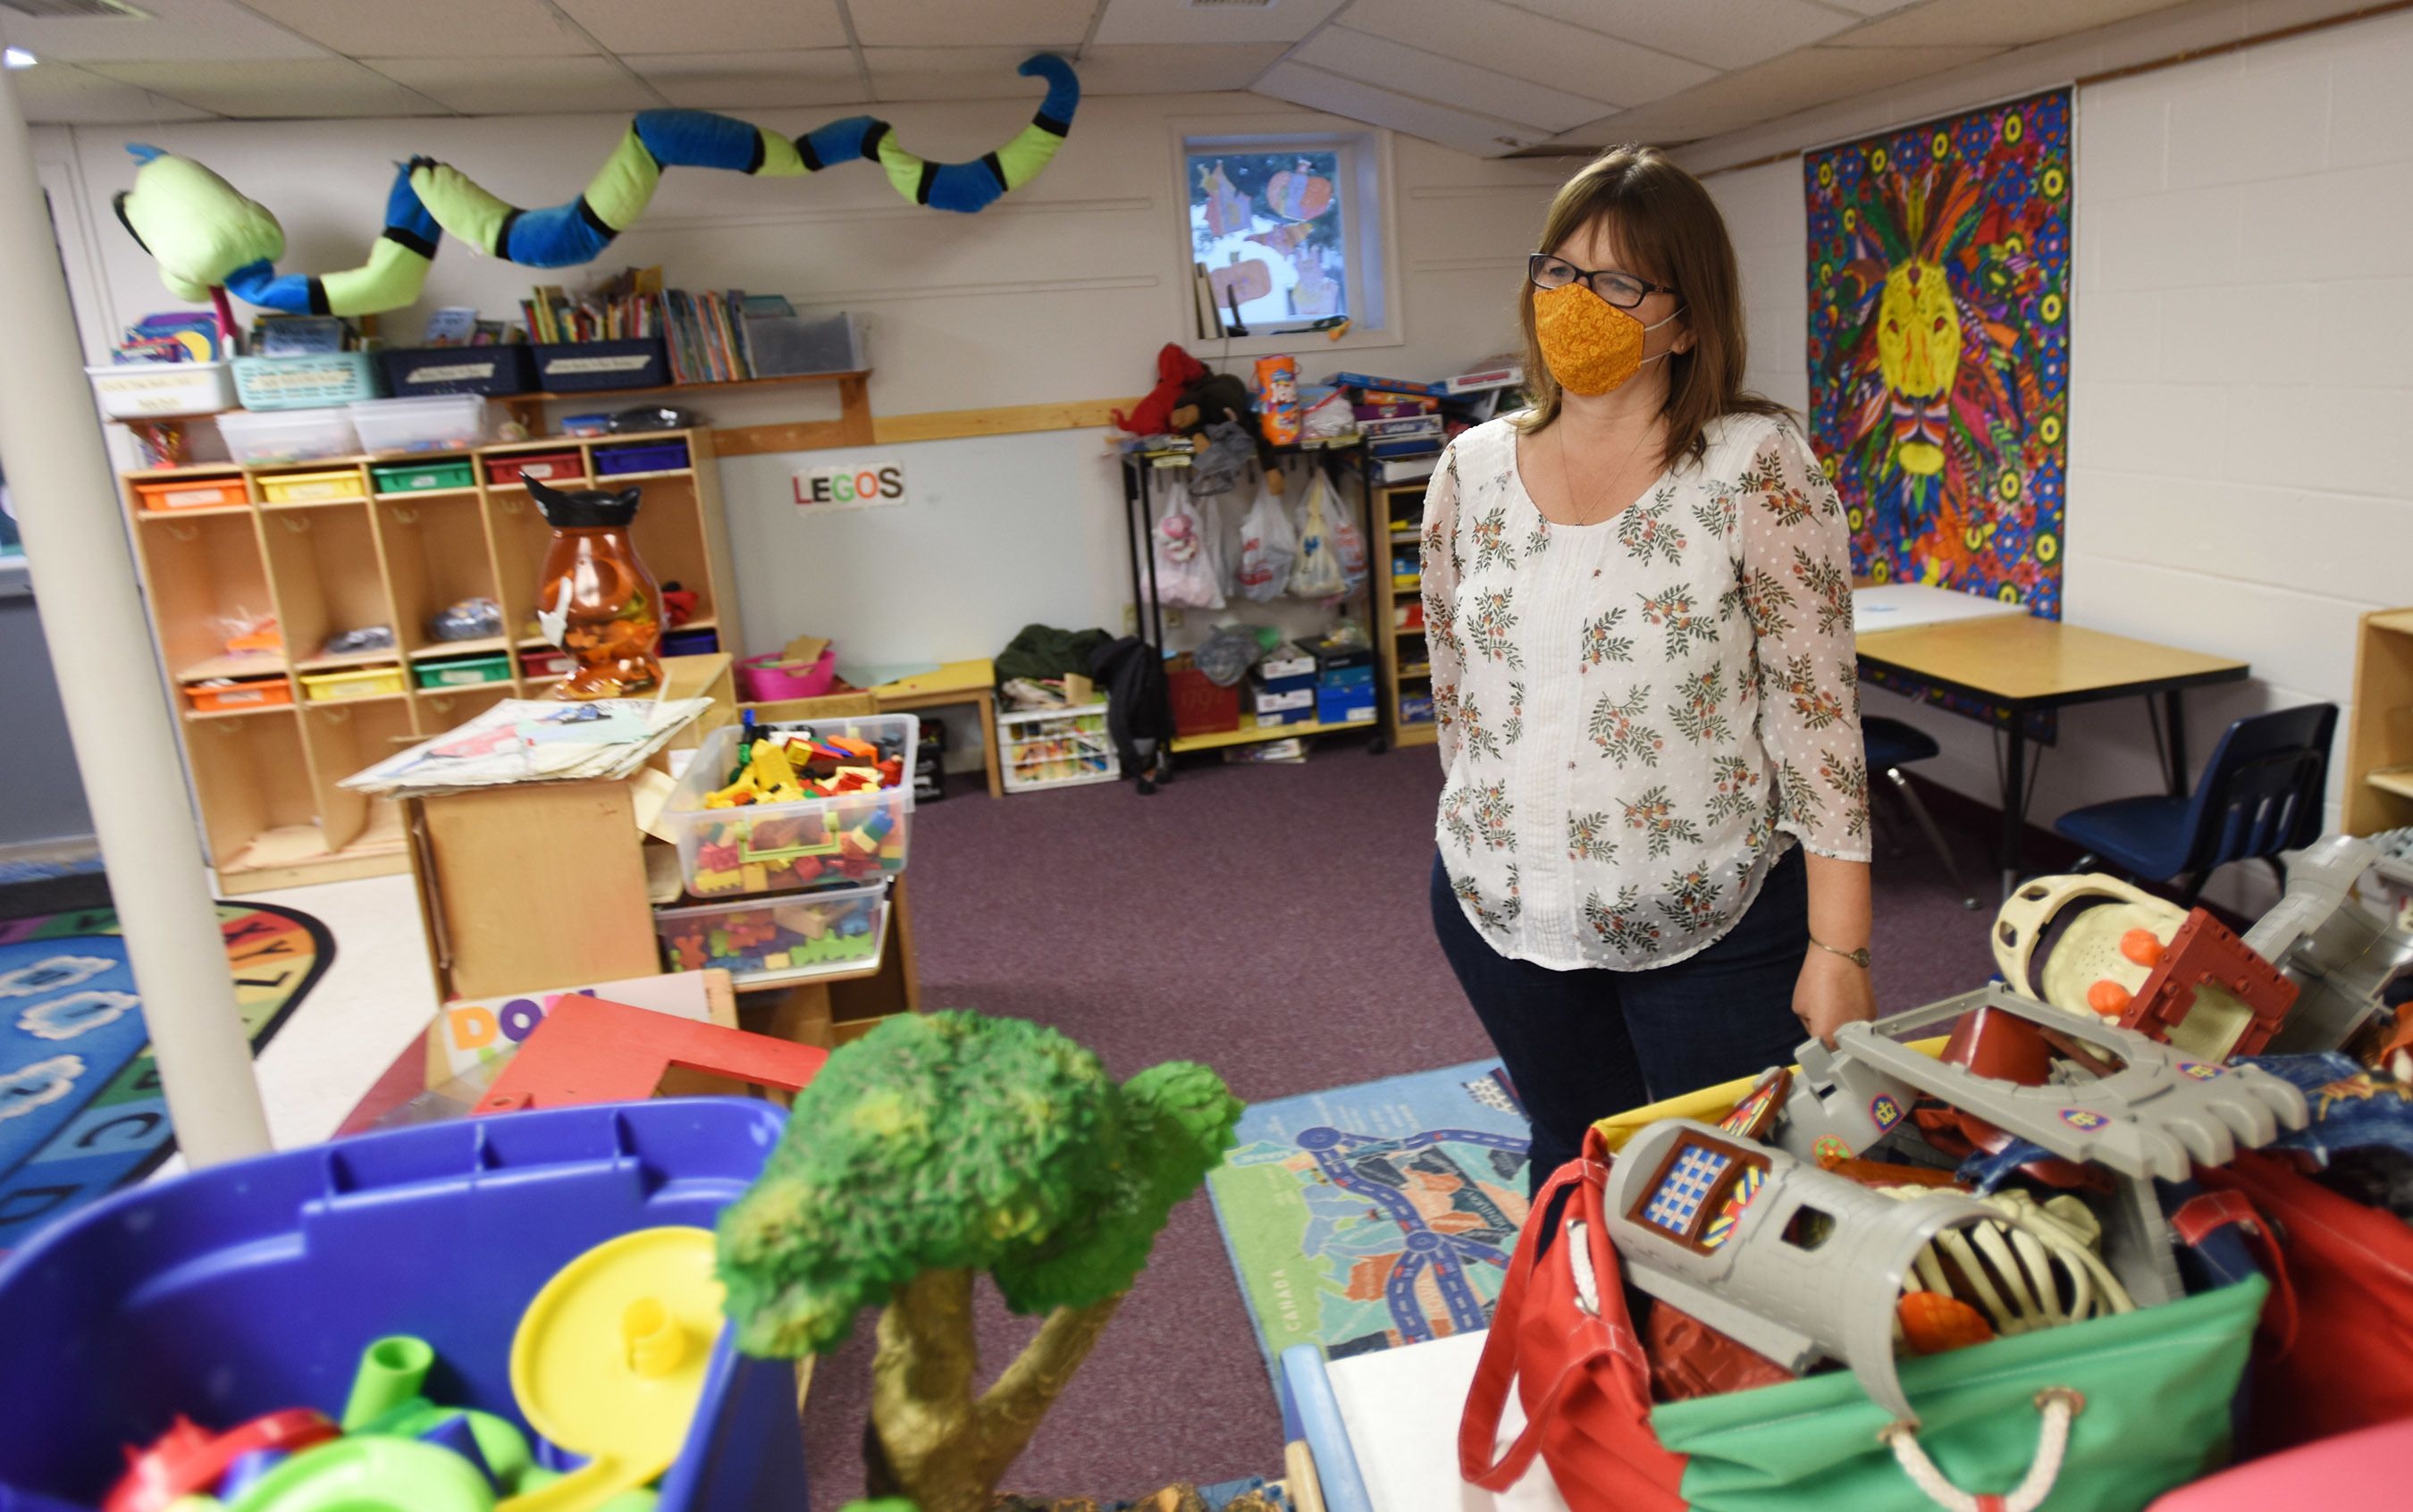 Hundreds of Pa. child-care centers have closed, and some fear it will get worse